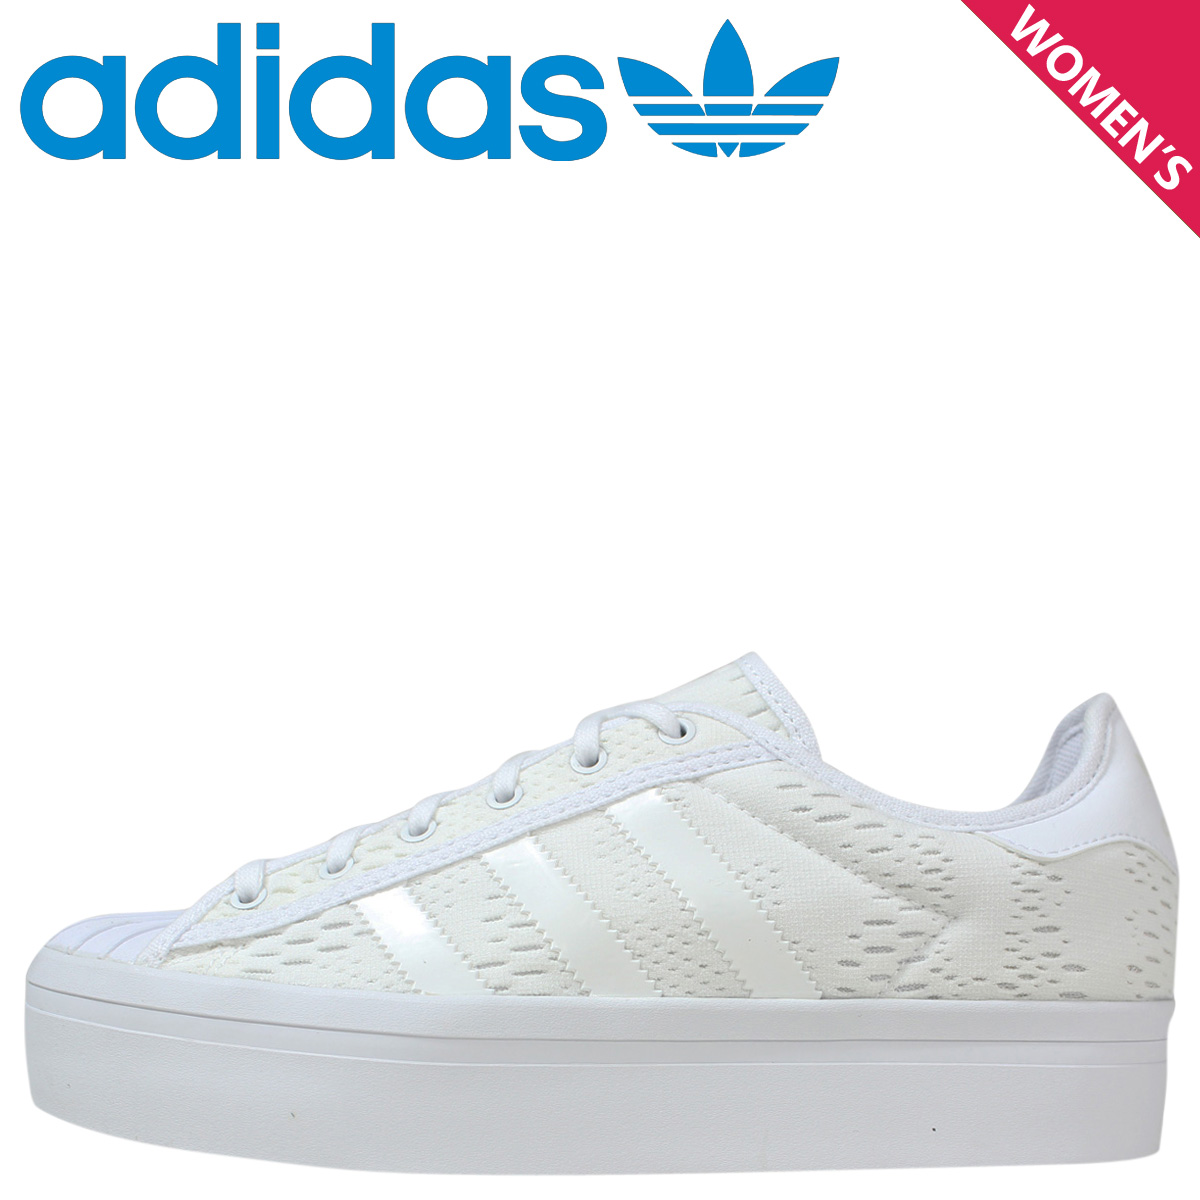 676e132f27de Classic Mark symbolizes the adidas three lines are simple yet also said the  face of the brand impact and the classic